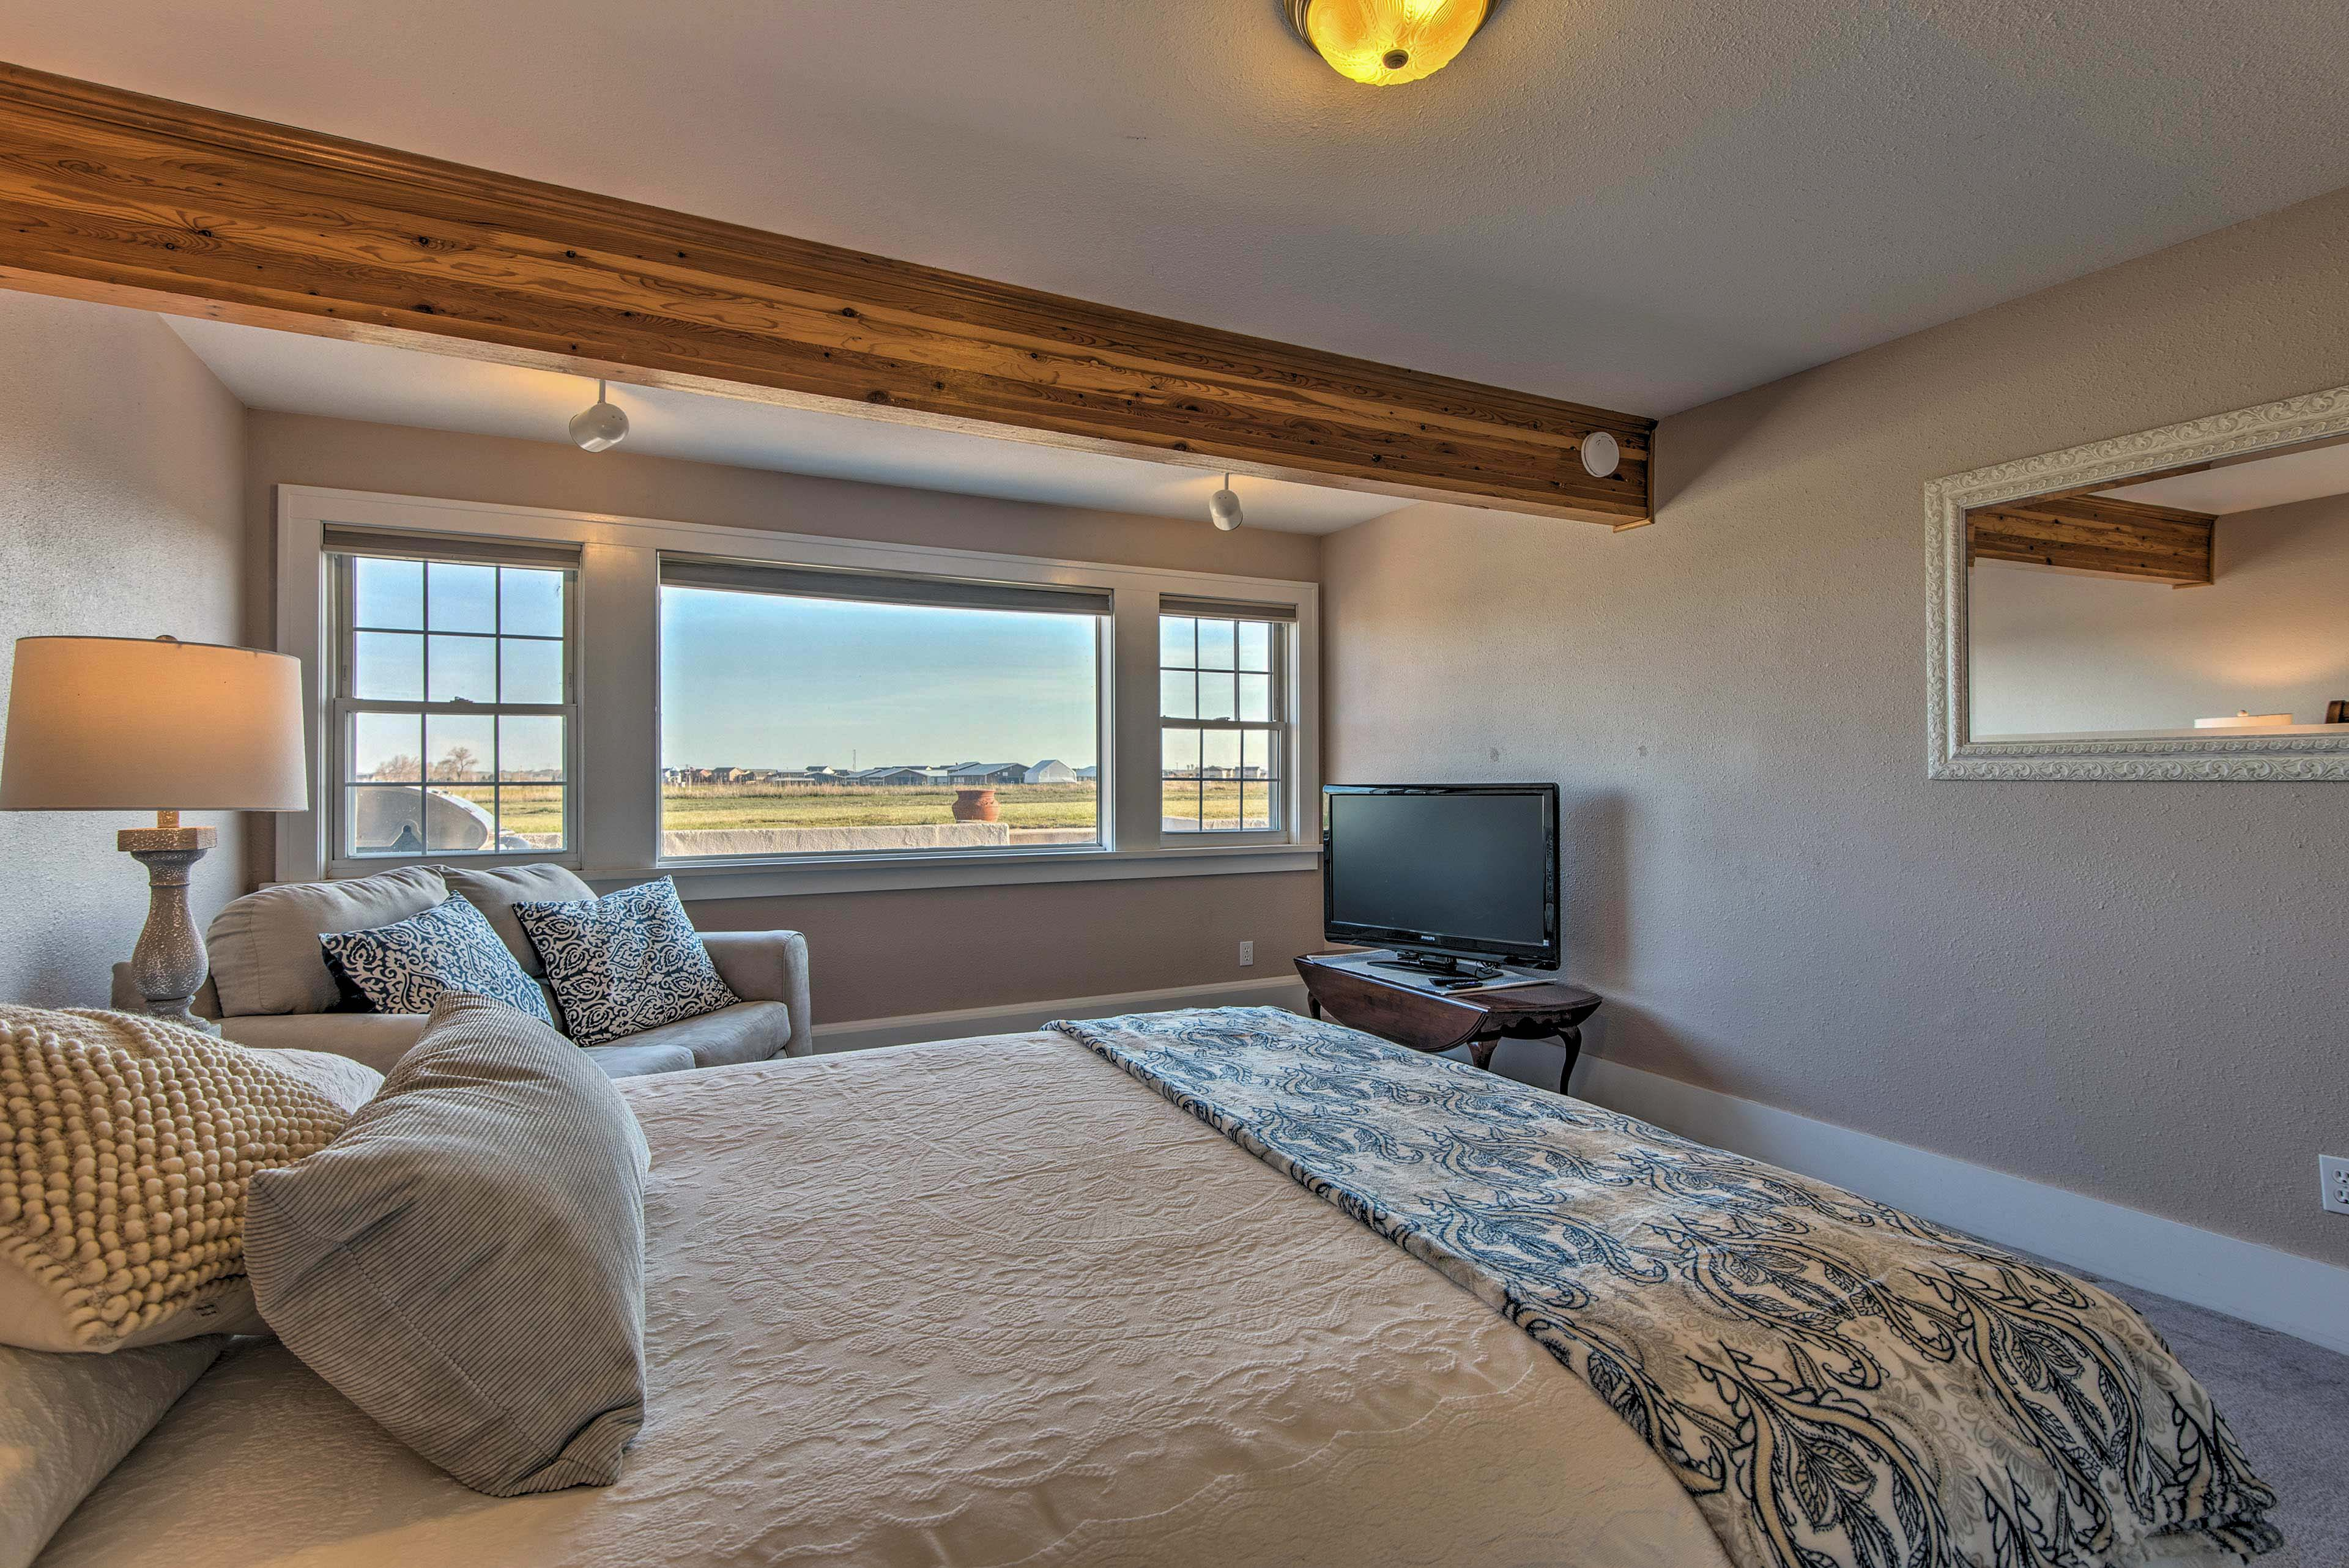 Each room reveals soothing views of the surrounding scenery.